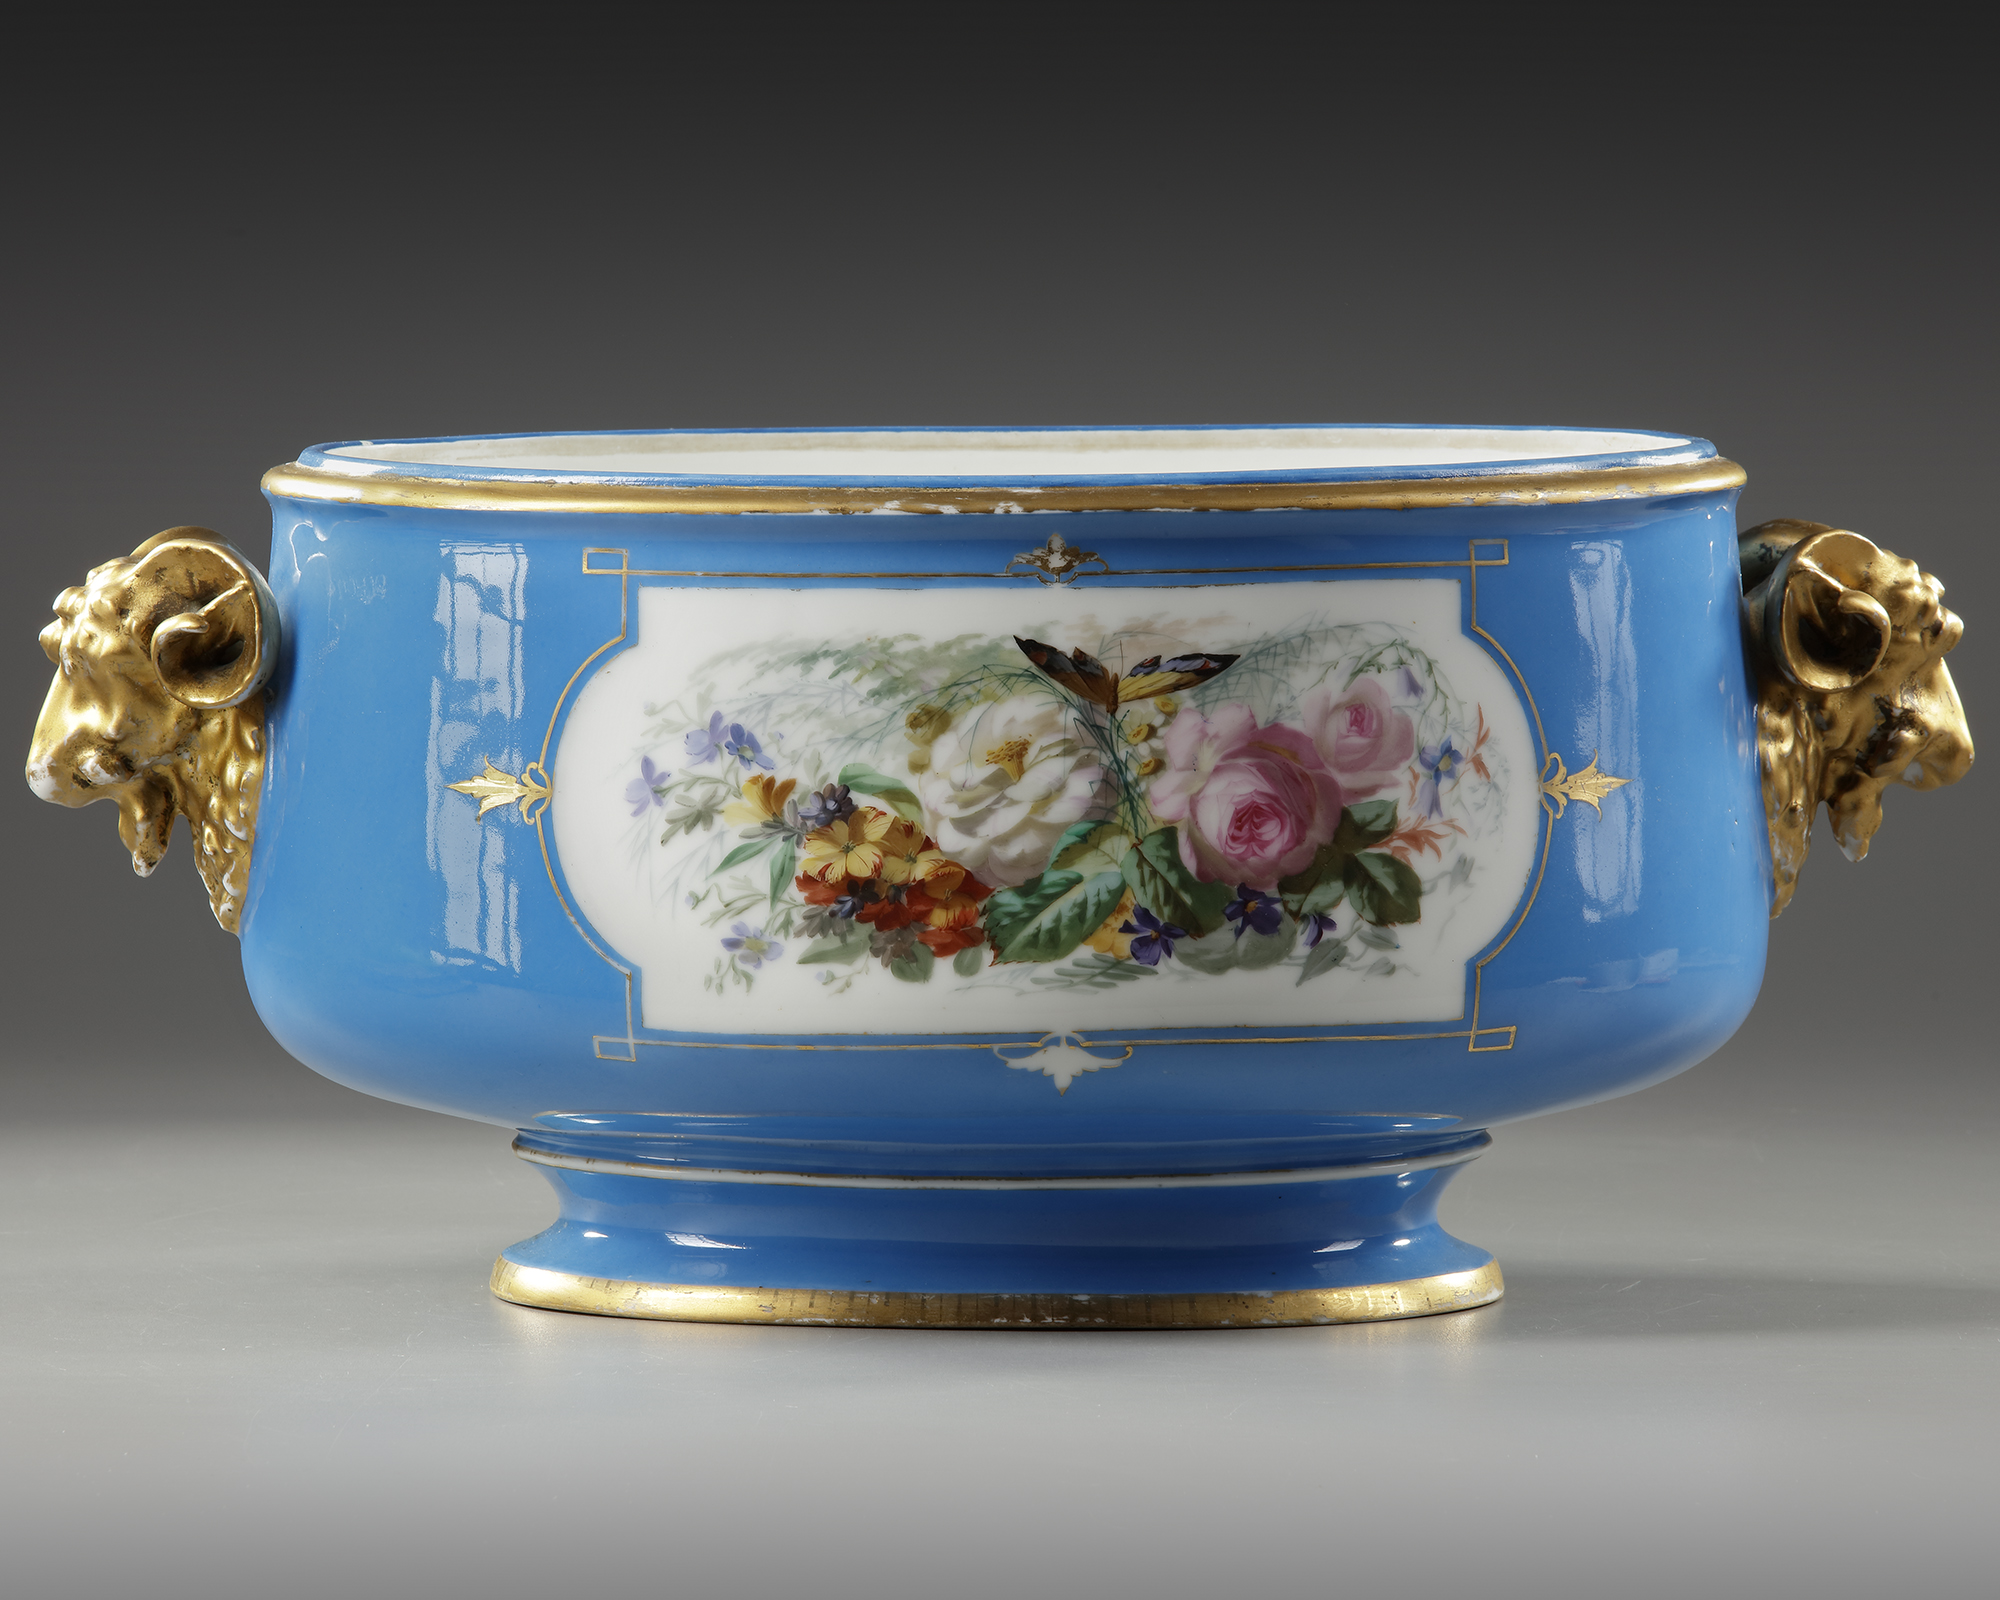 A FRENCH SEVRES PORCELAIN CUP, LATE 19TH CENTURY - Image 2 of 5